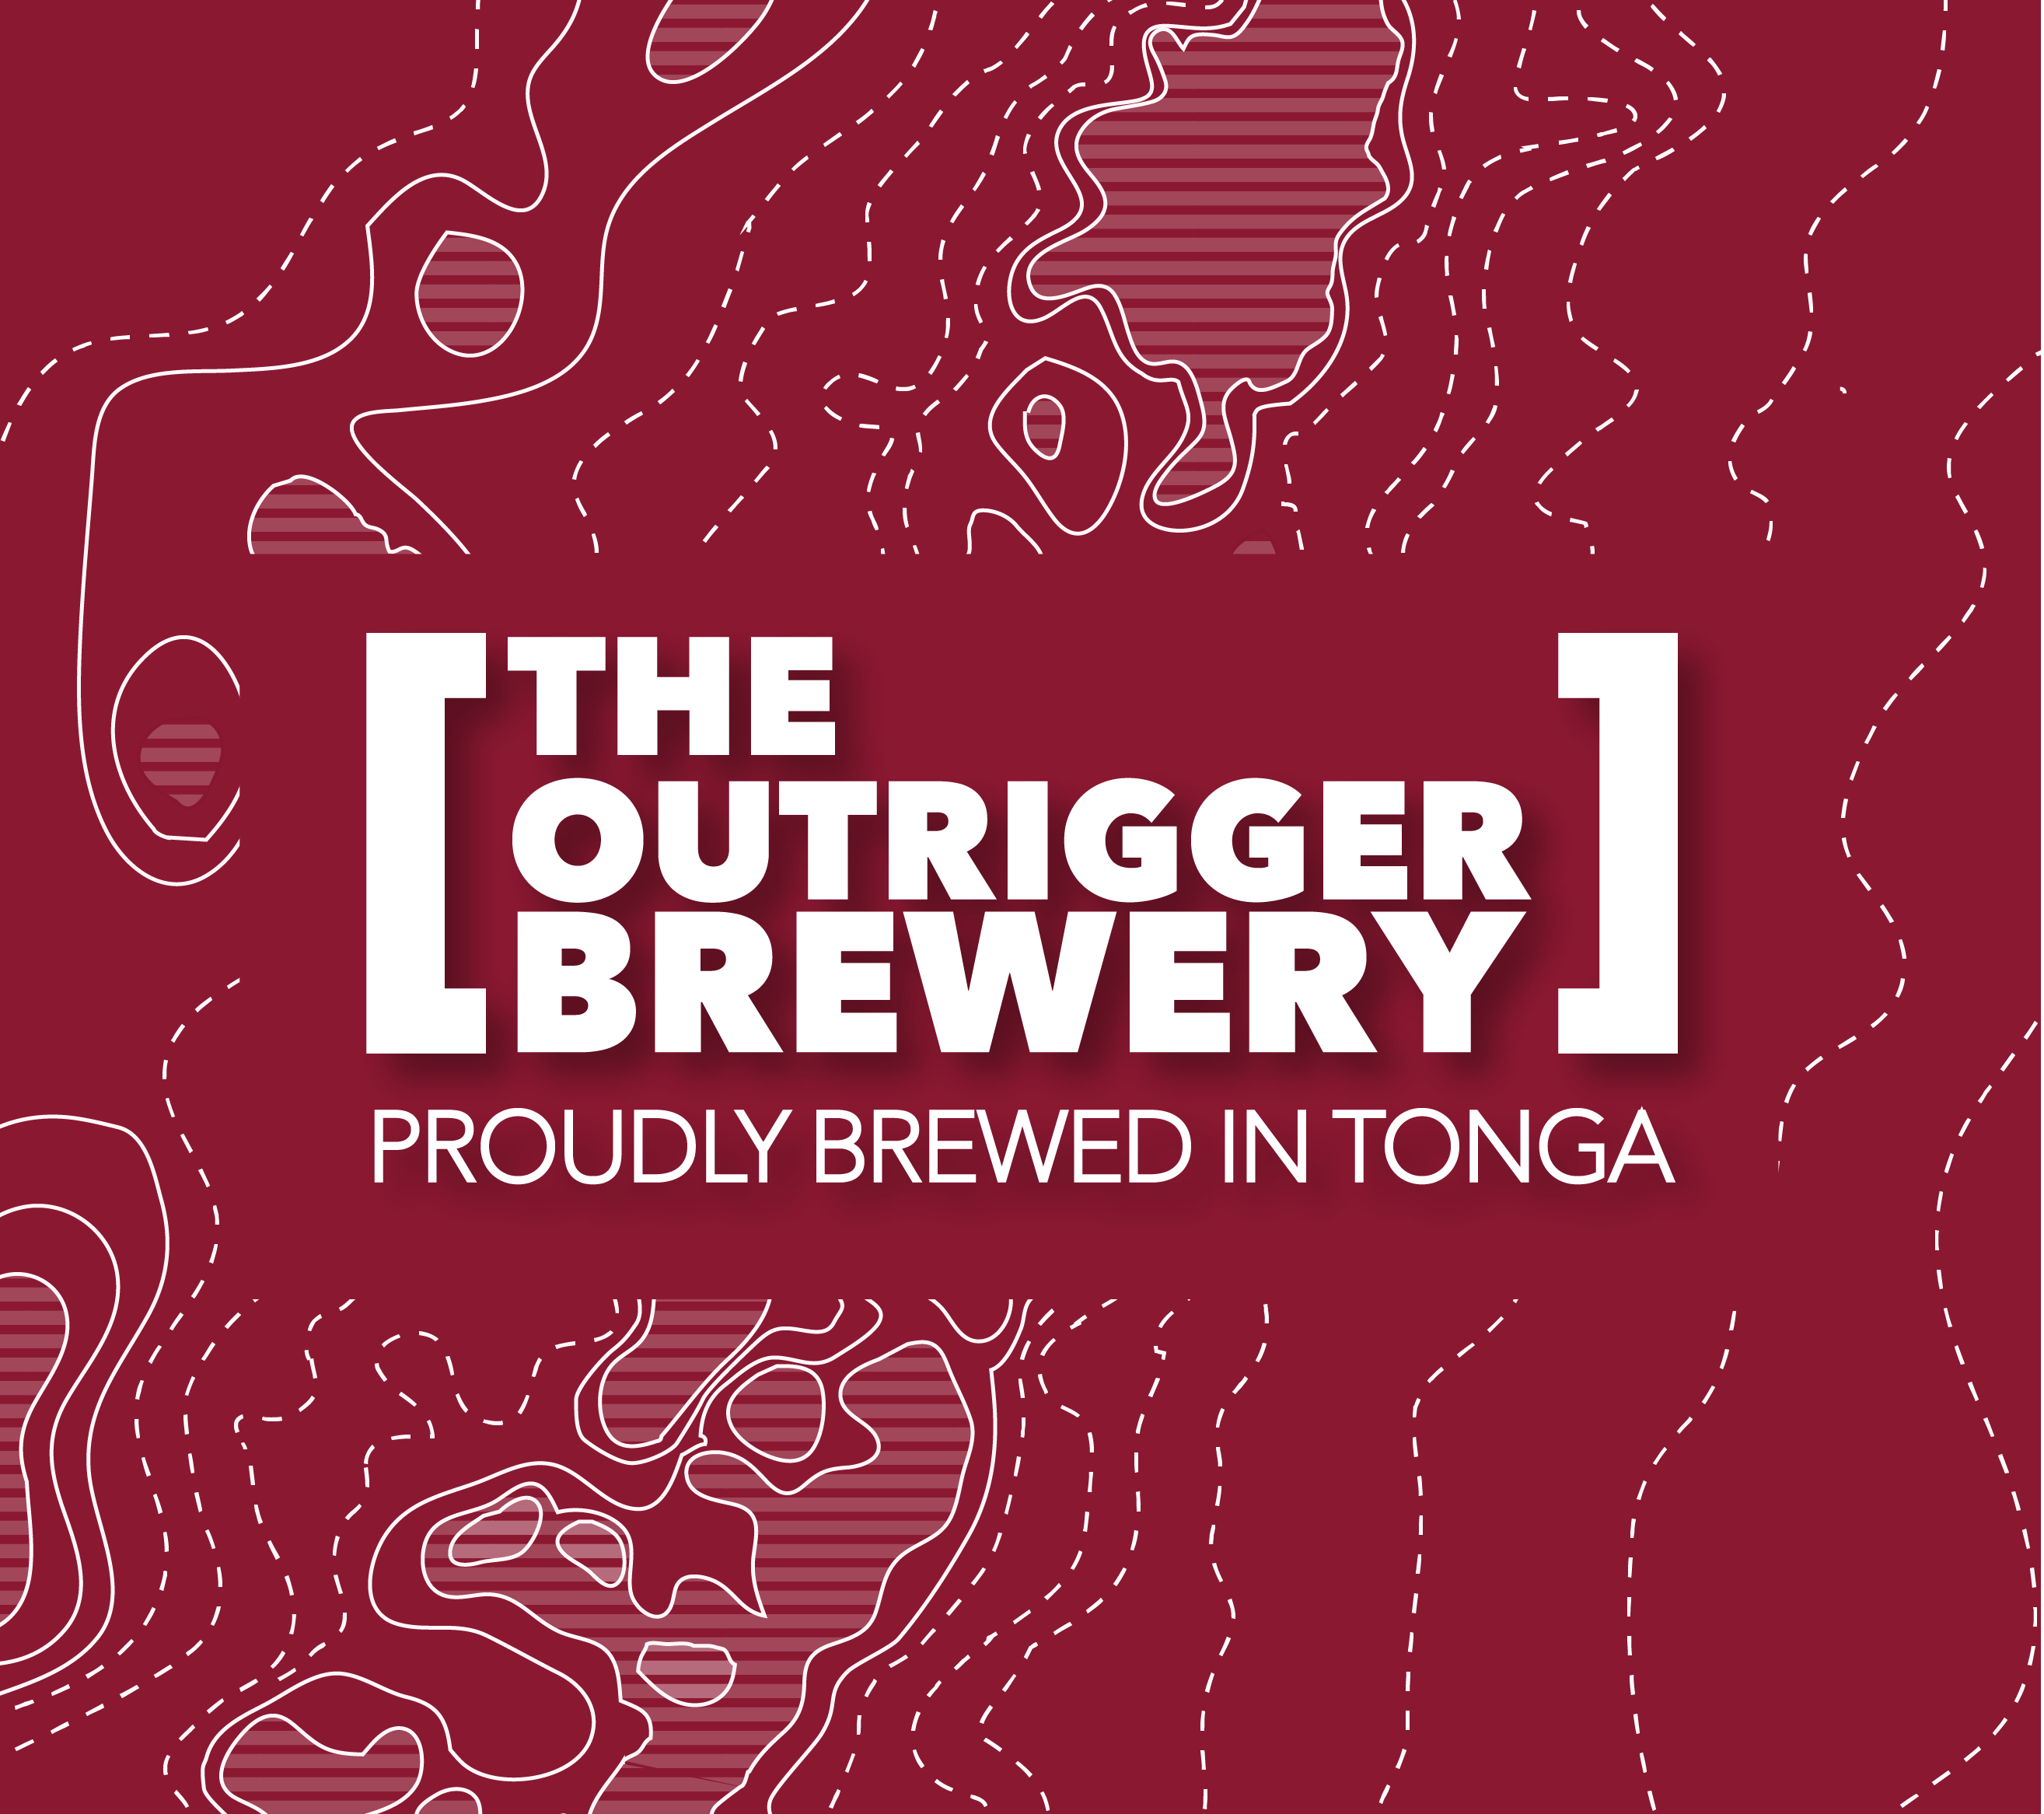 Outrigger brewery